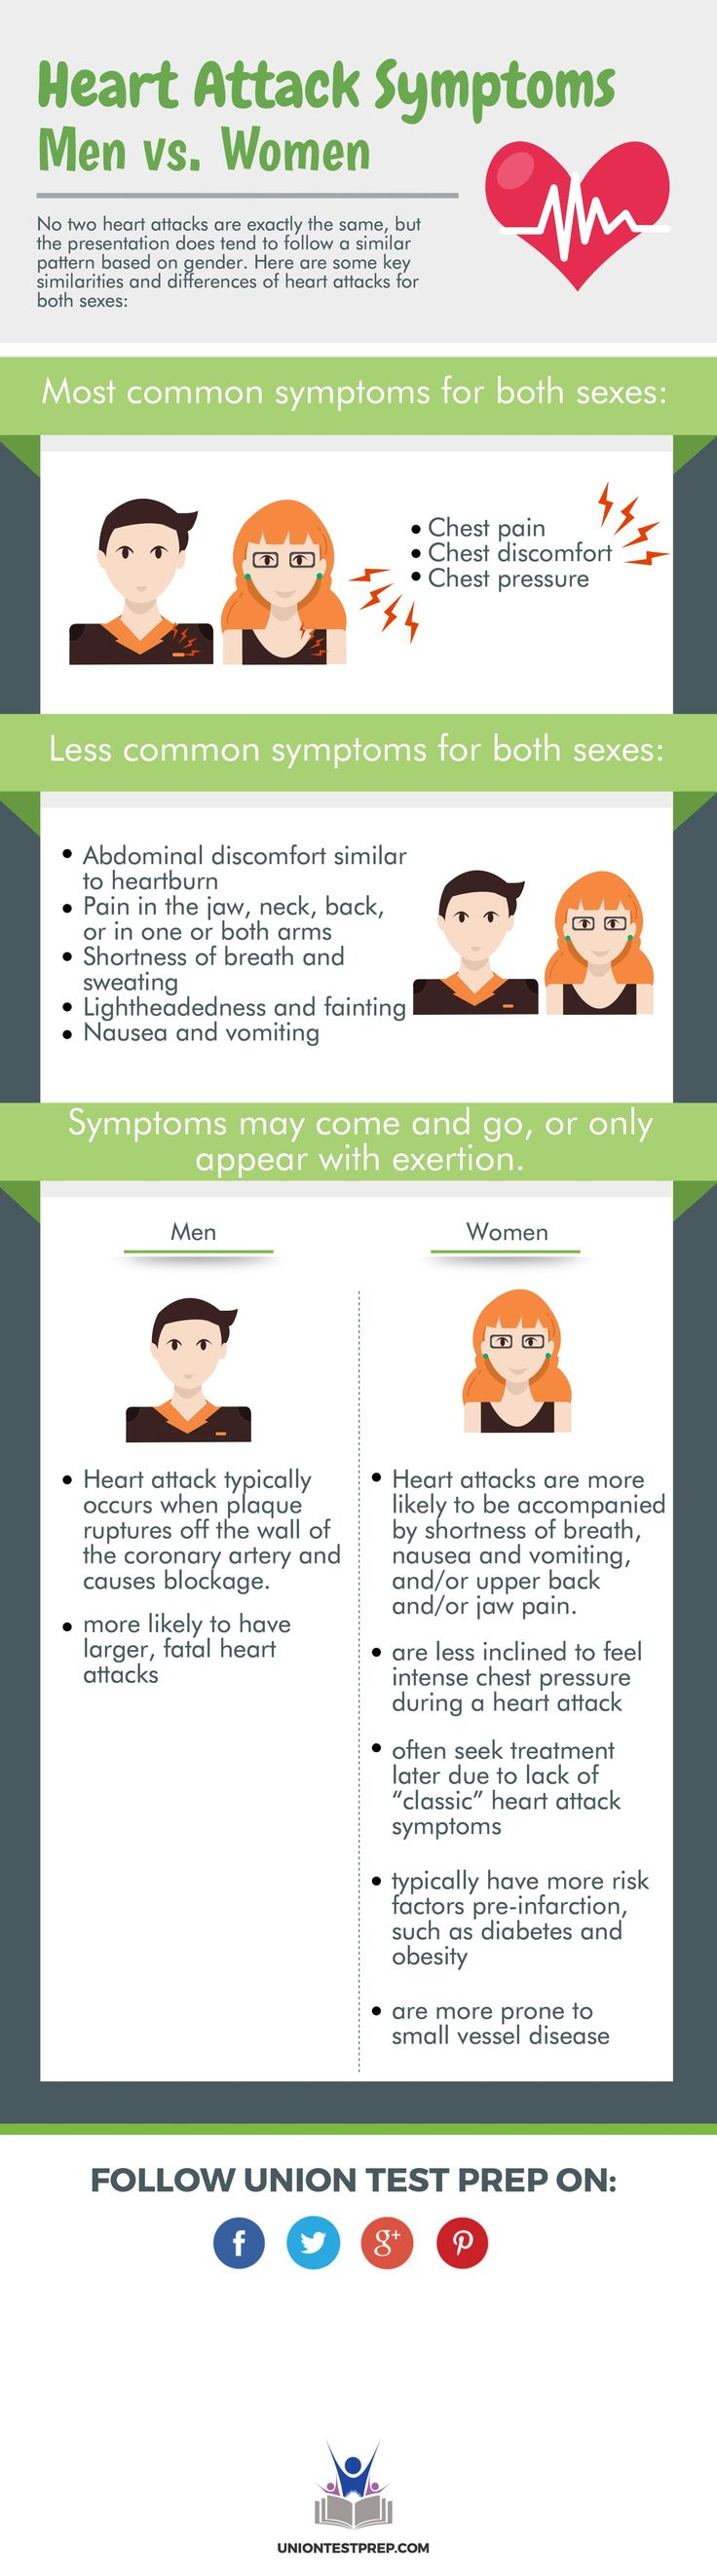 Heart attack symptoms in men vs. women- a must know for everyone, especially EMT's, RN's, and LPN's!